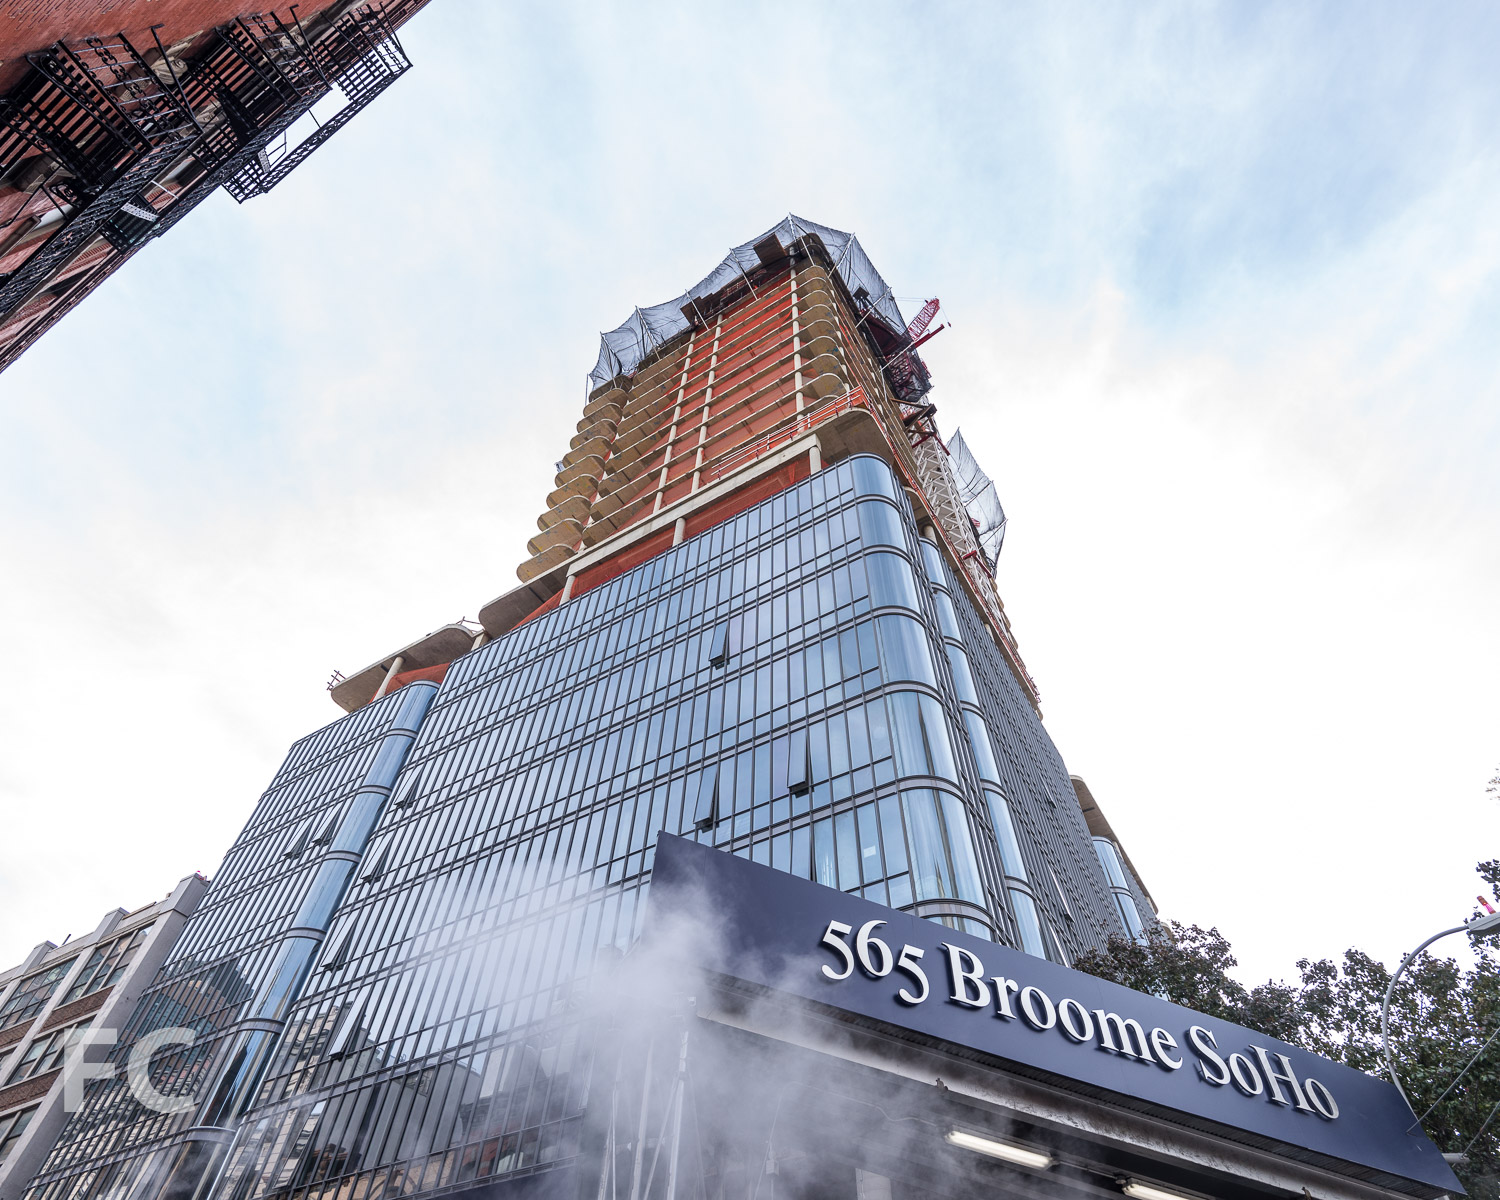 Looking up at the northwest corner of the tower from Broome Street.